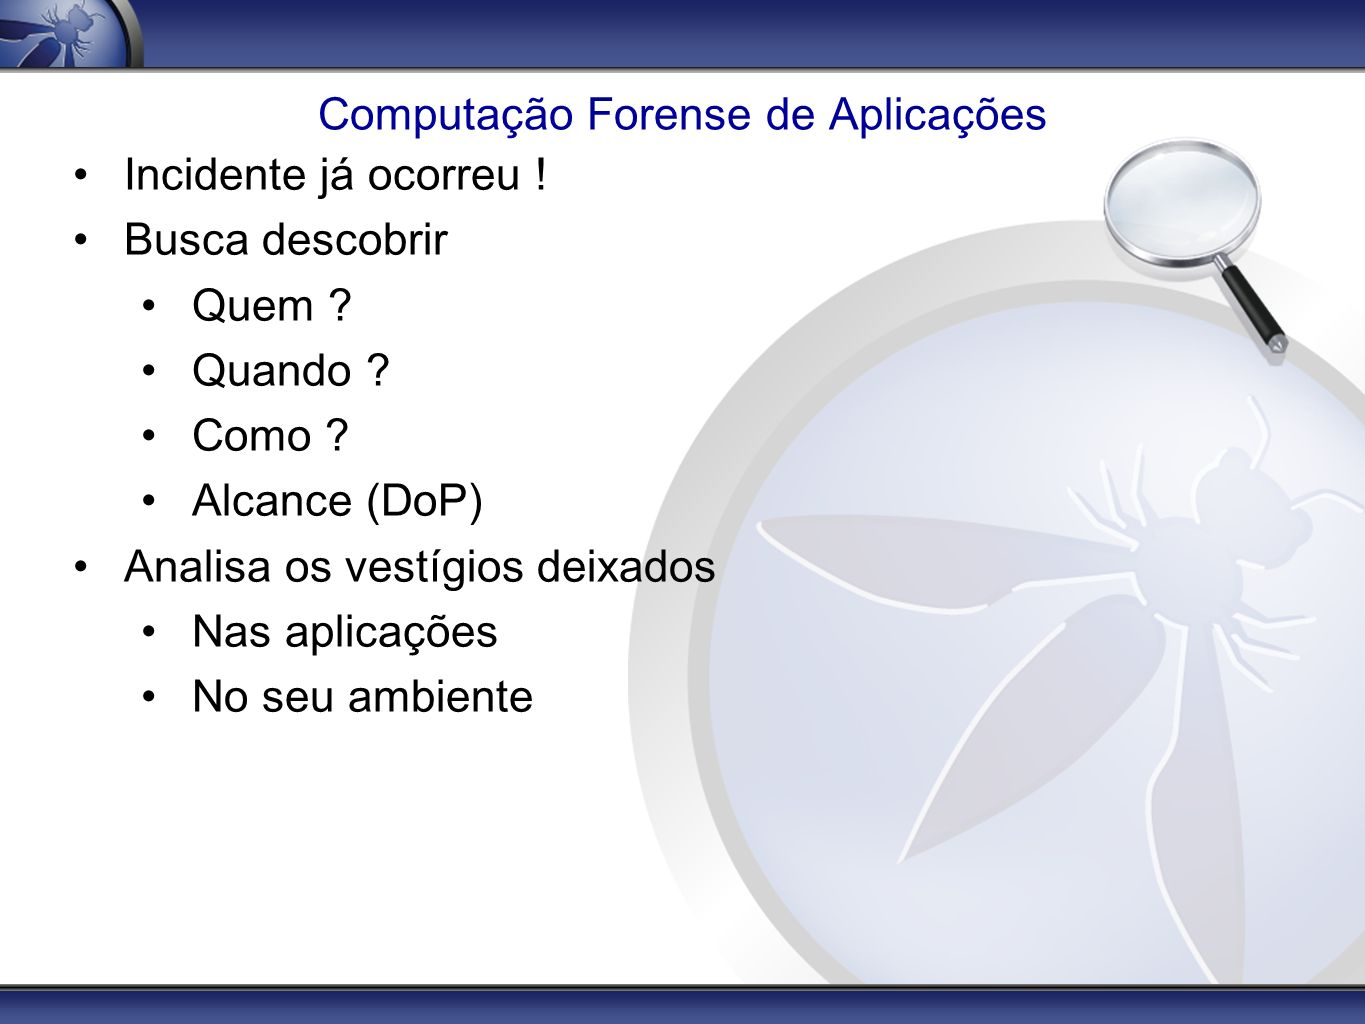 Referências OWASP Top 10 Project http://www.owasp.org/index.php/Category:OWASP_Top_Ten_Project Live View Kevvie Fowler - SQL Server Forensics http://www.applicationforensics.com/ David Litchfield - Oracle Forensics http://www.ngssoftware.com / Forensic Log Parsing with Microsoft s LogParser Mark Burnett para SecurityFocus